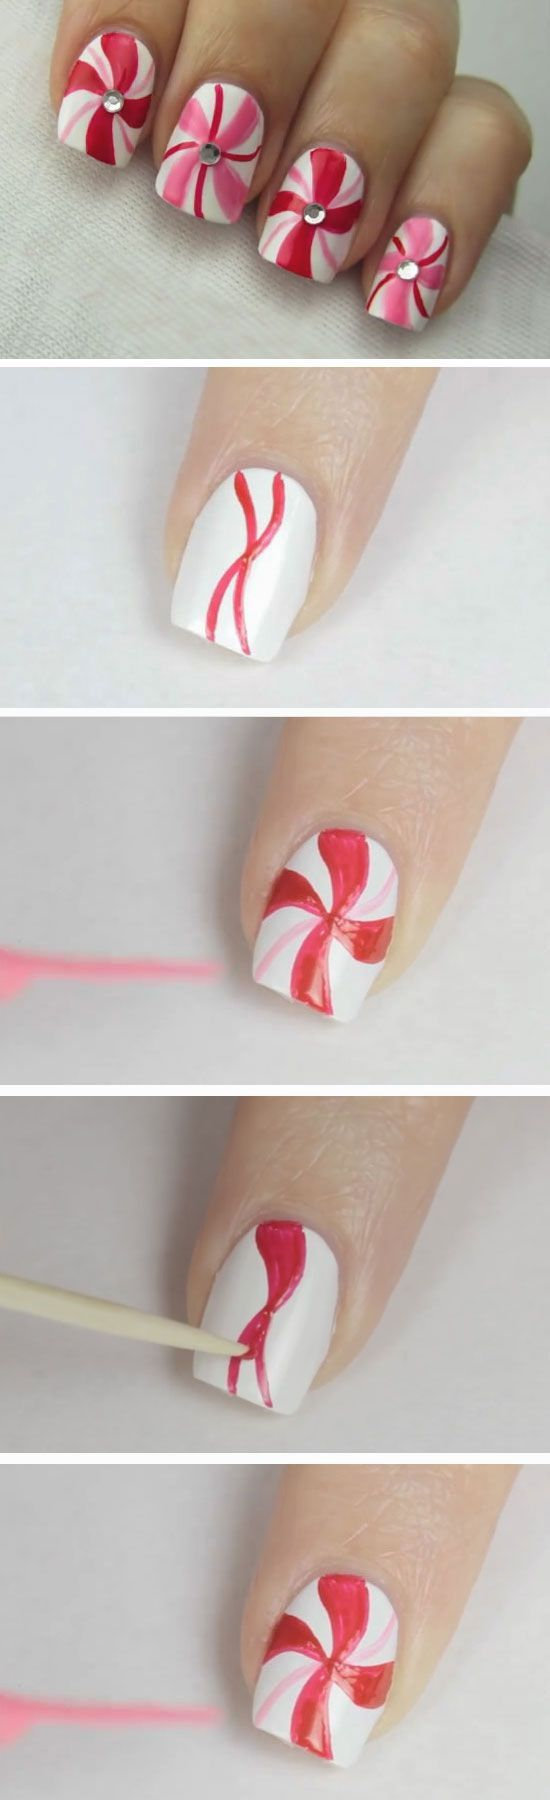 The 25 best diy christmas nail art ideas on pinterest diy 20 diy christmas nail art ideas for short nails prinsesfo Gallery